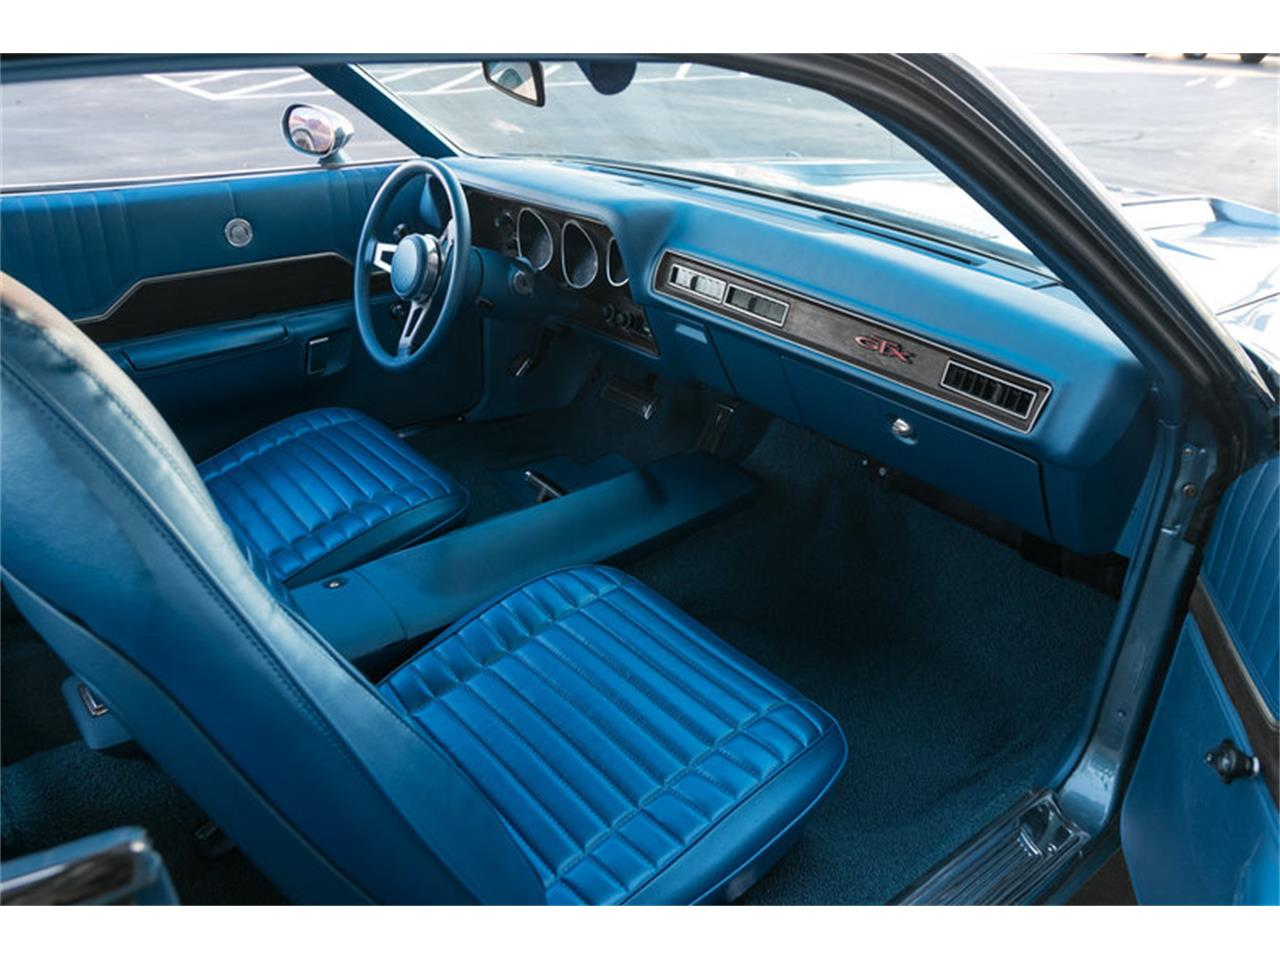 Large Picture of Classic '71 Plymouth GTX located in Missouri - $52,995.00 - MCFV